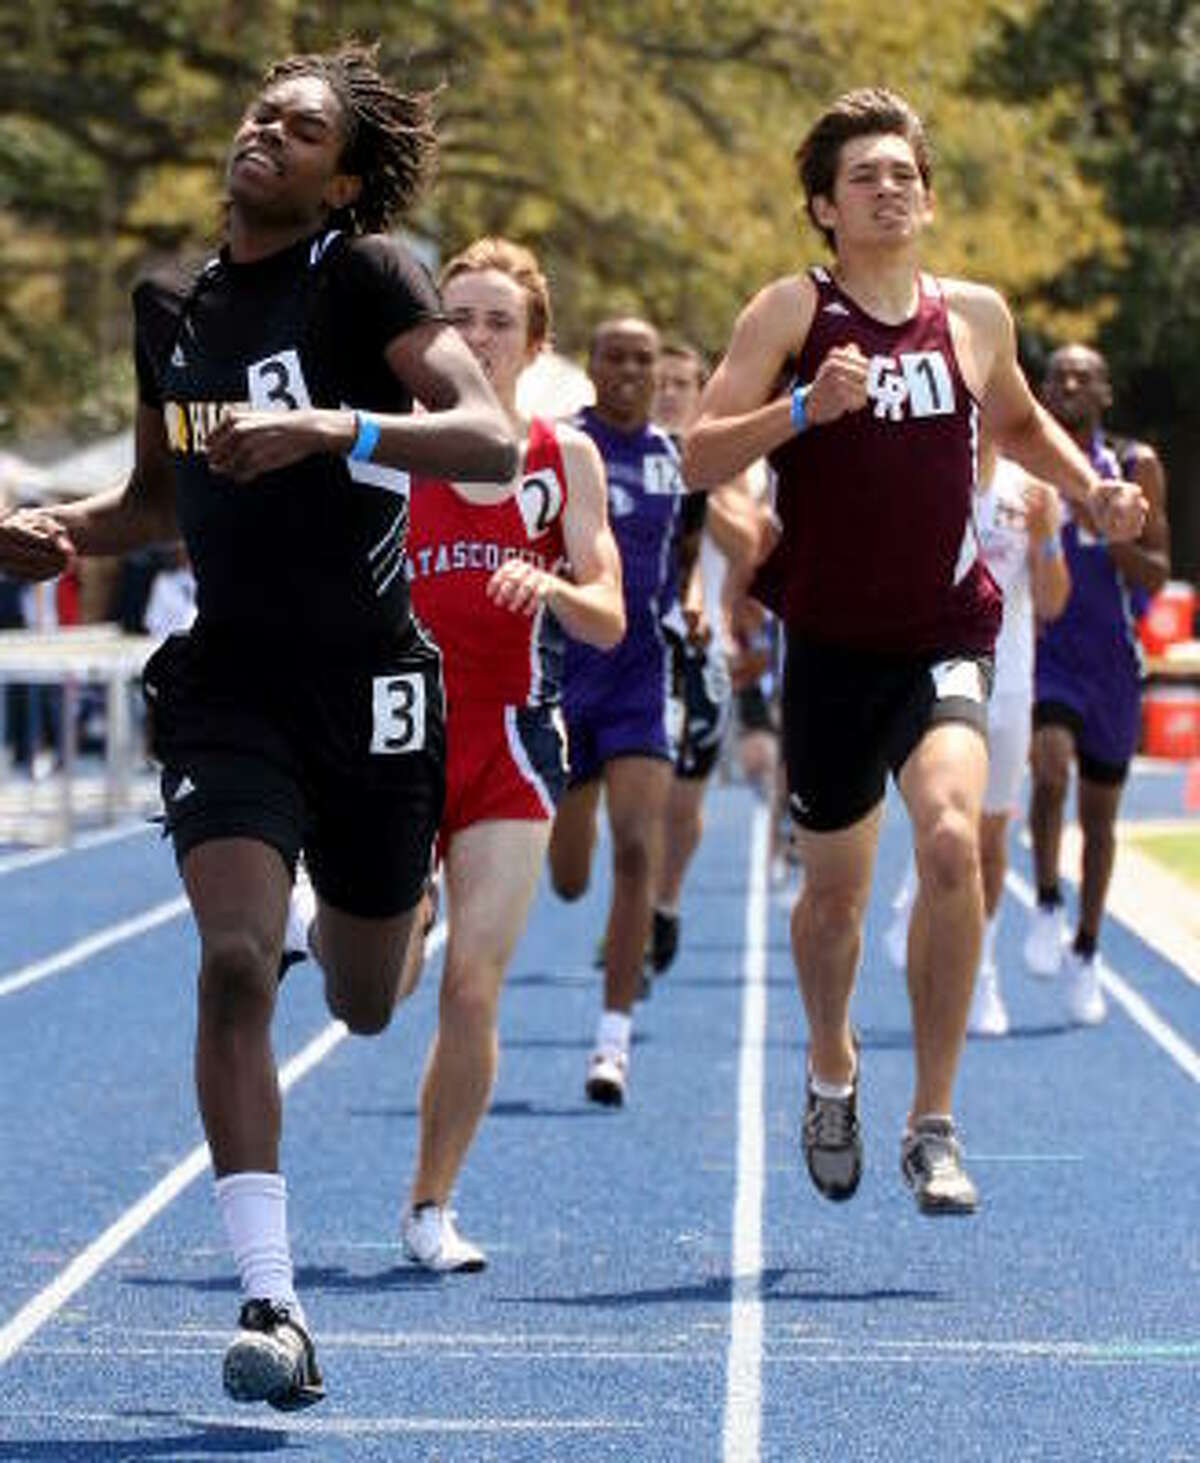 Hasting's Chris Jamerson had a last-second push to win the 800-meter run.